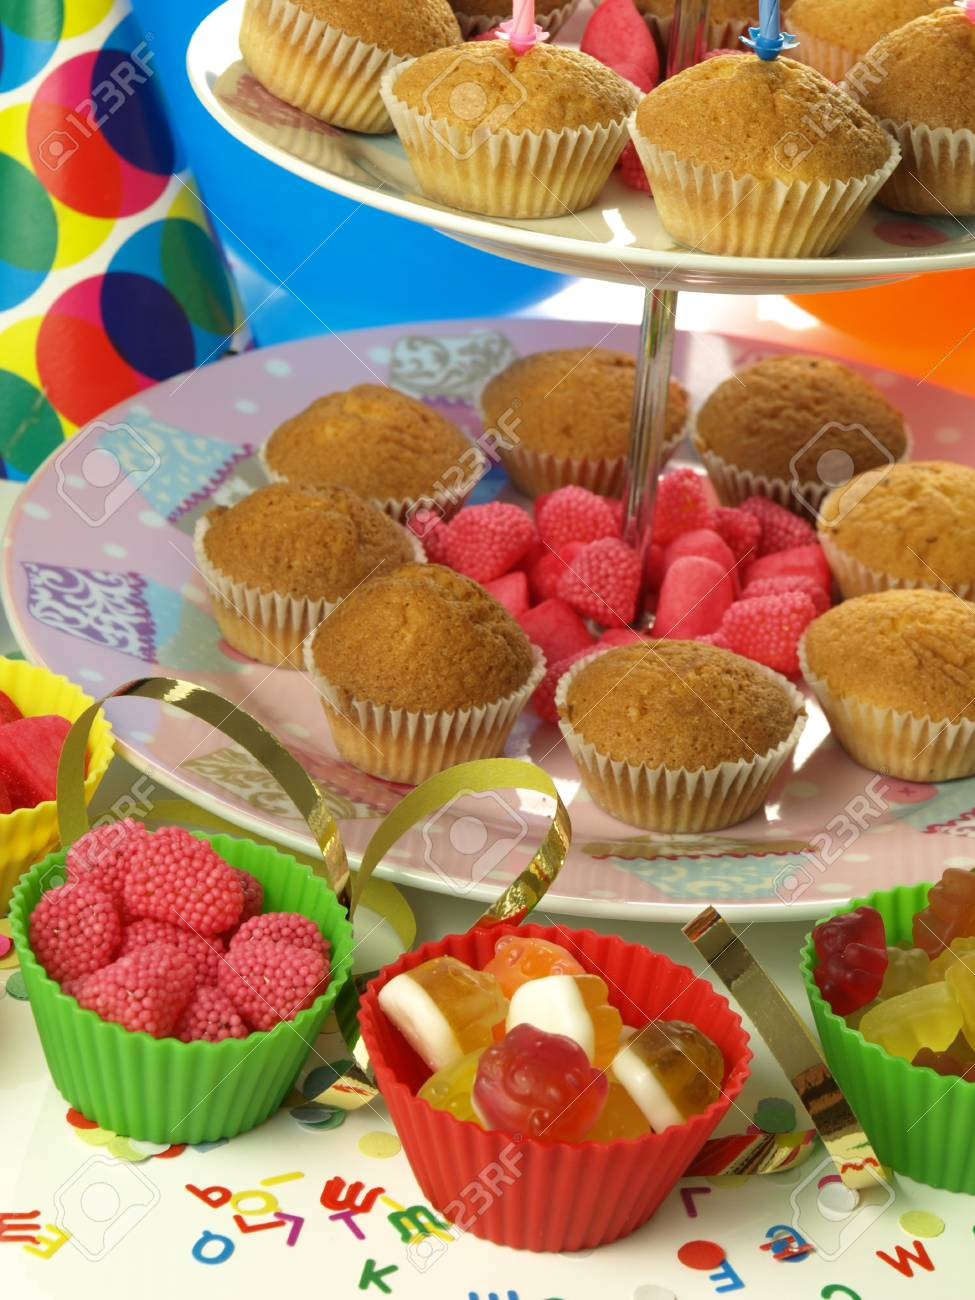 Muffins And Jelly Beans For The Birthday Party Stock Photo Picture